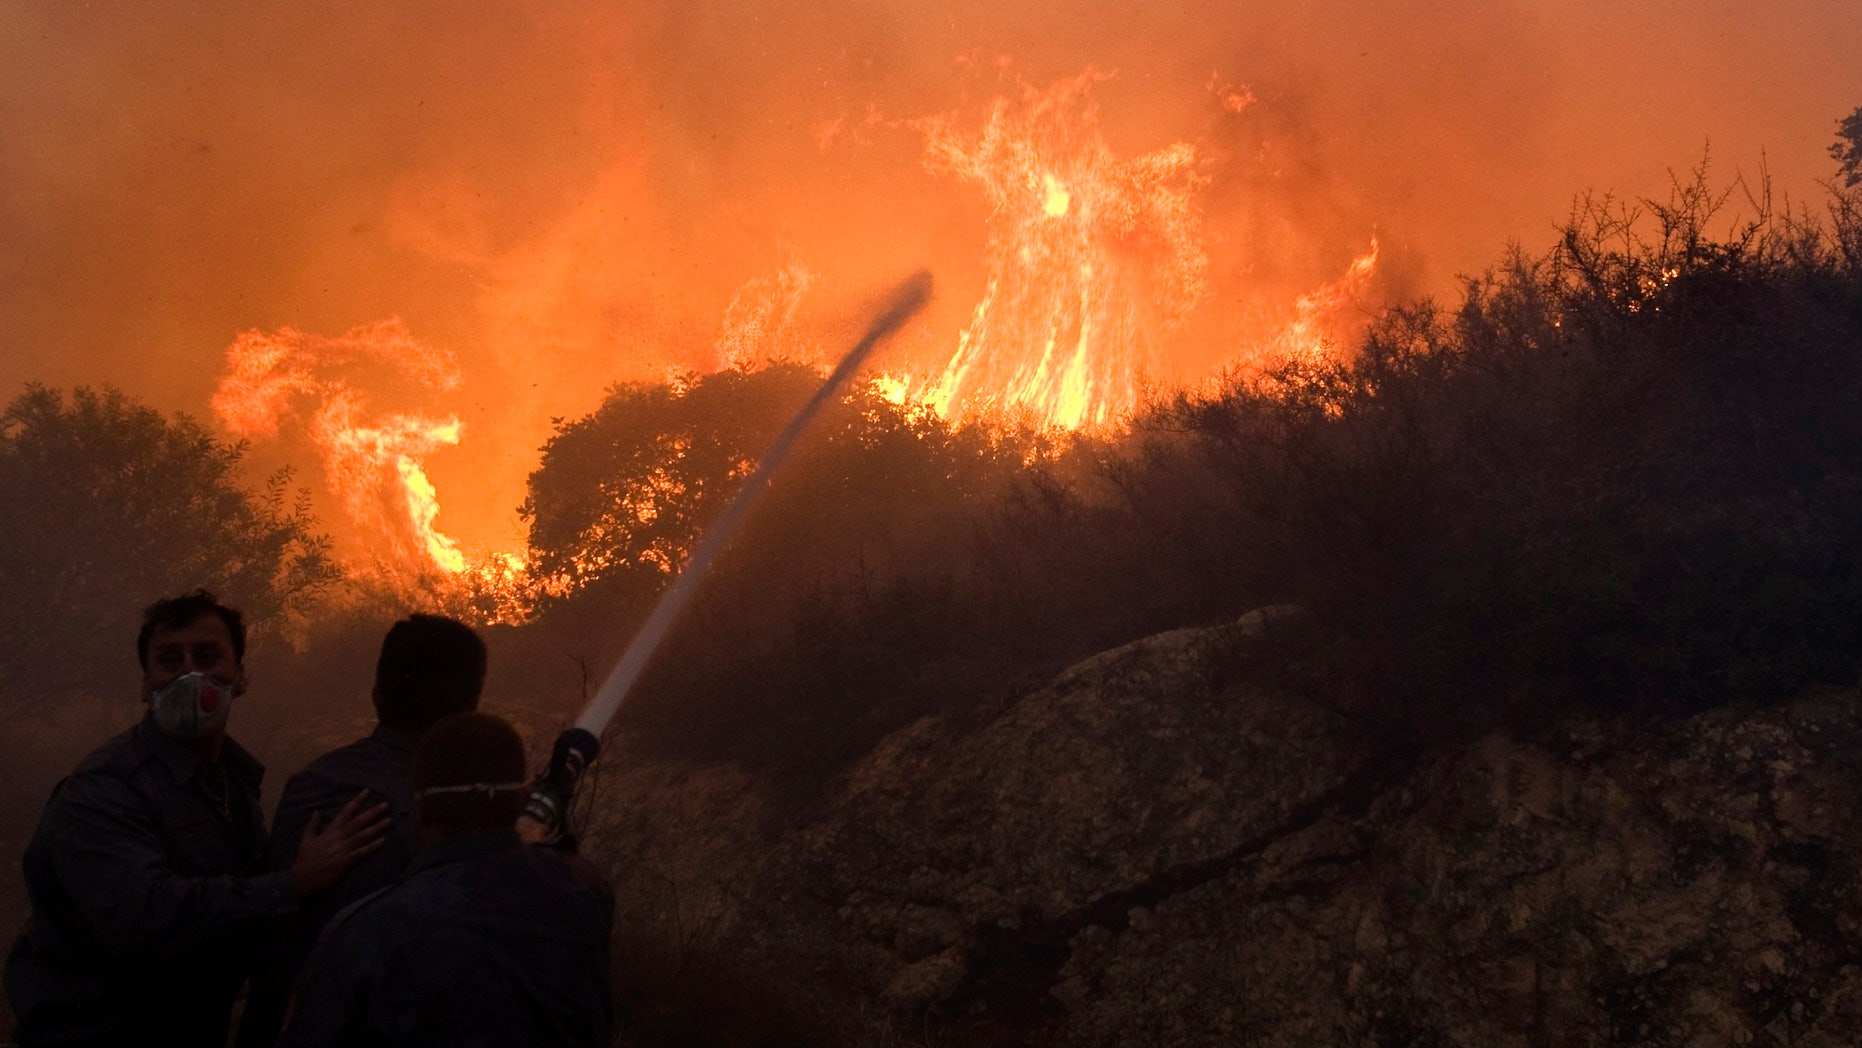 Dec. 3: Firefighters try to extinguish the flames in Tirat Hacarmel, northern Israel.